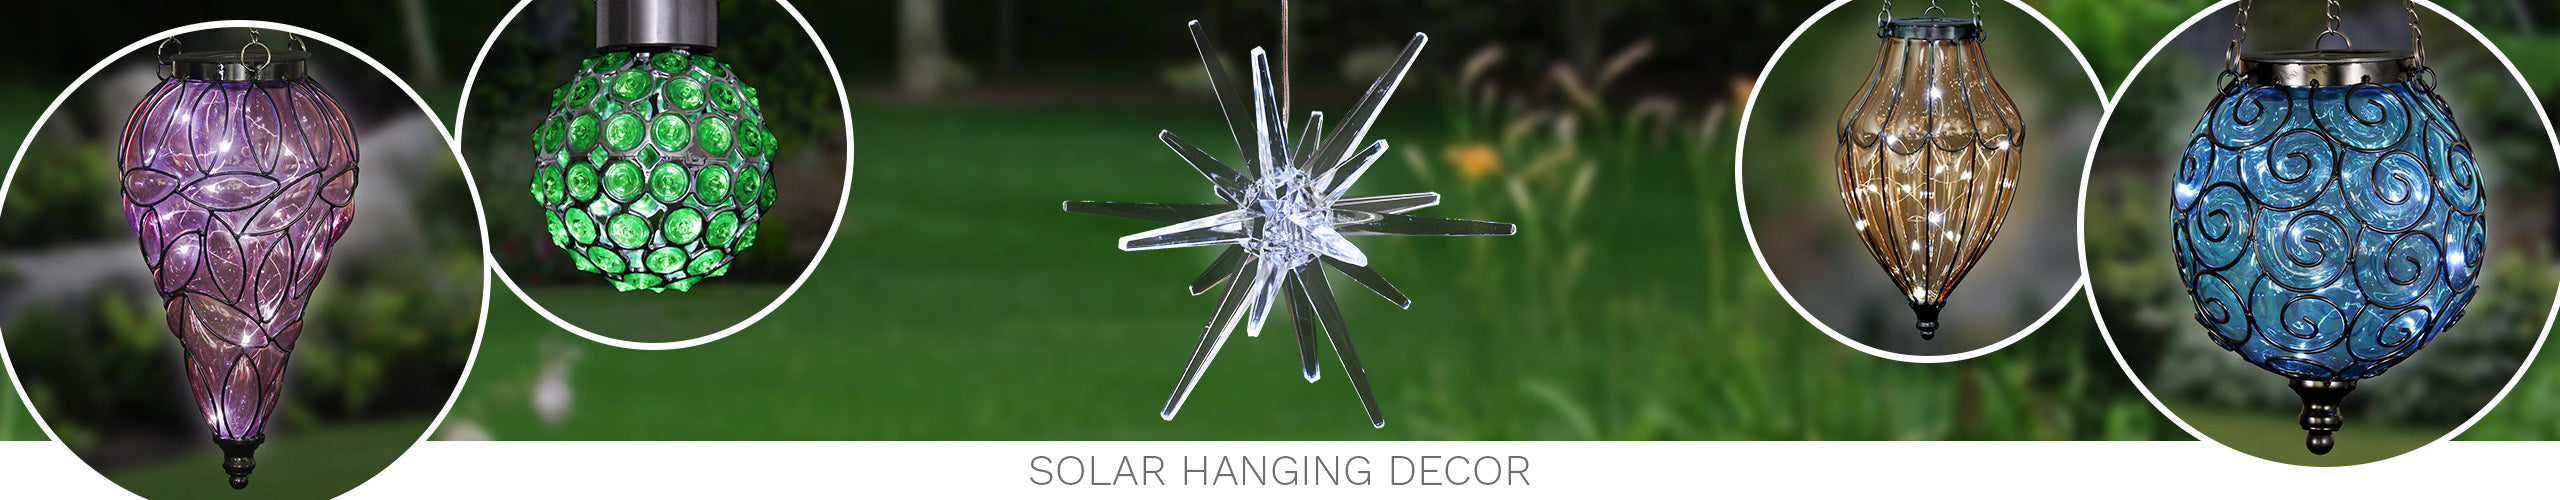 Solar Hanging Decor